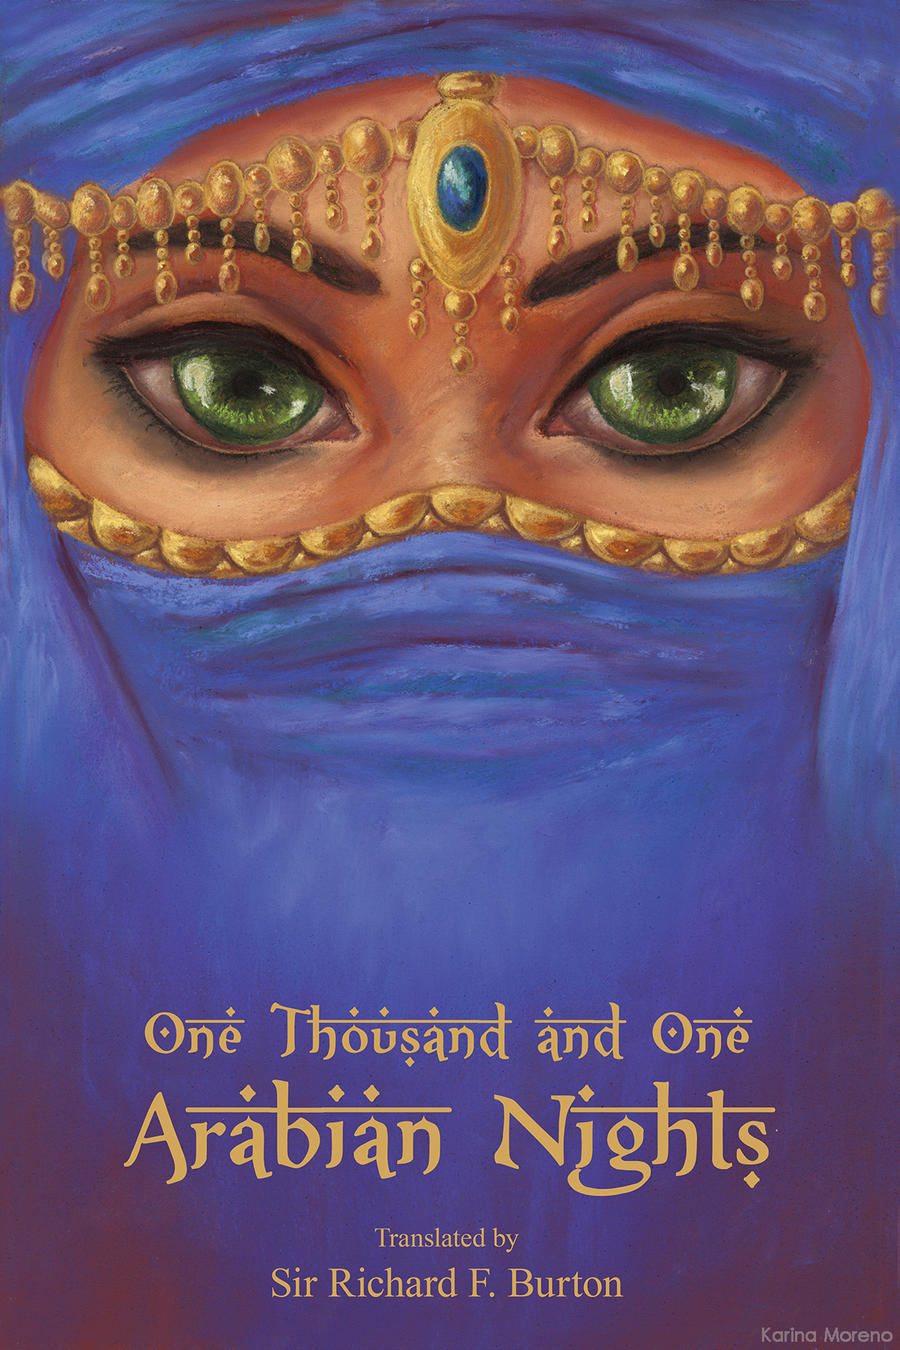 thousand one nights This page contains details about the fiction book one thousand and one nights by india/iran/iraq/egypt published in 1706 this book is the 30th greatest fiction book of all time as determined by thegreatestbooksorg.